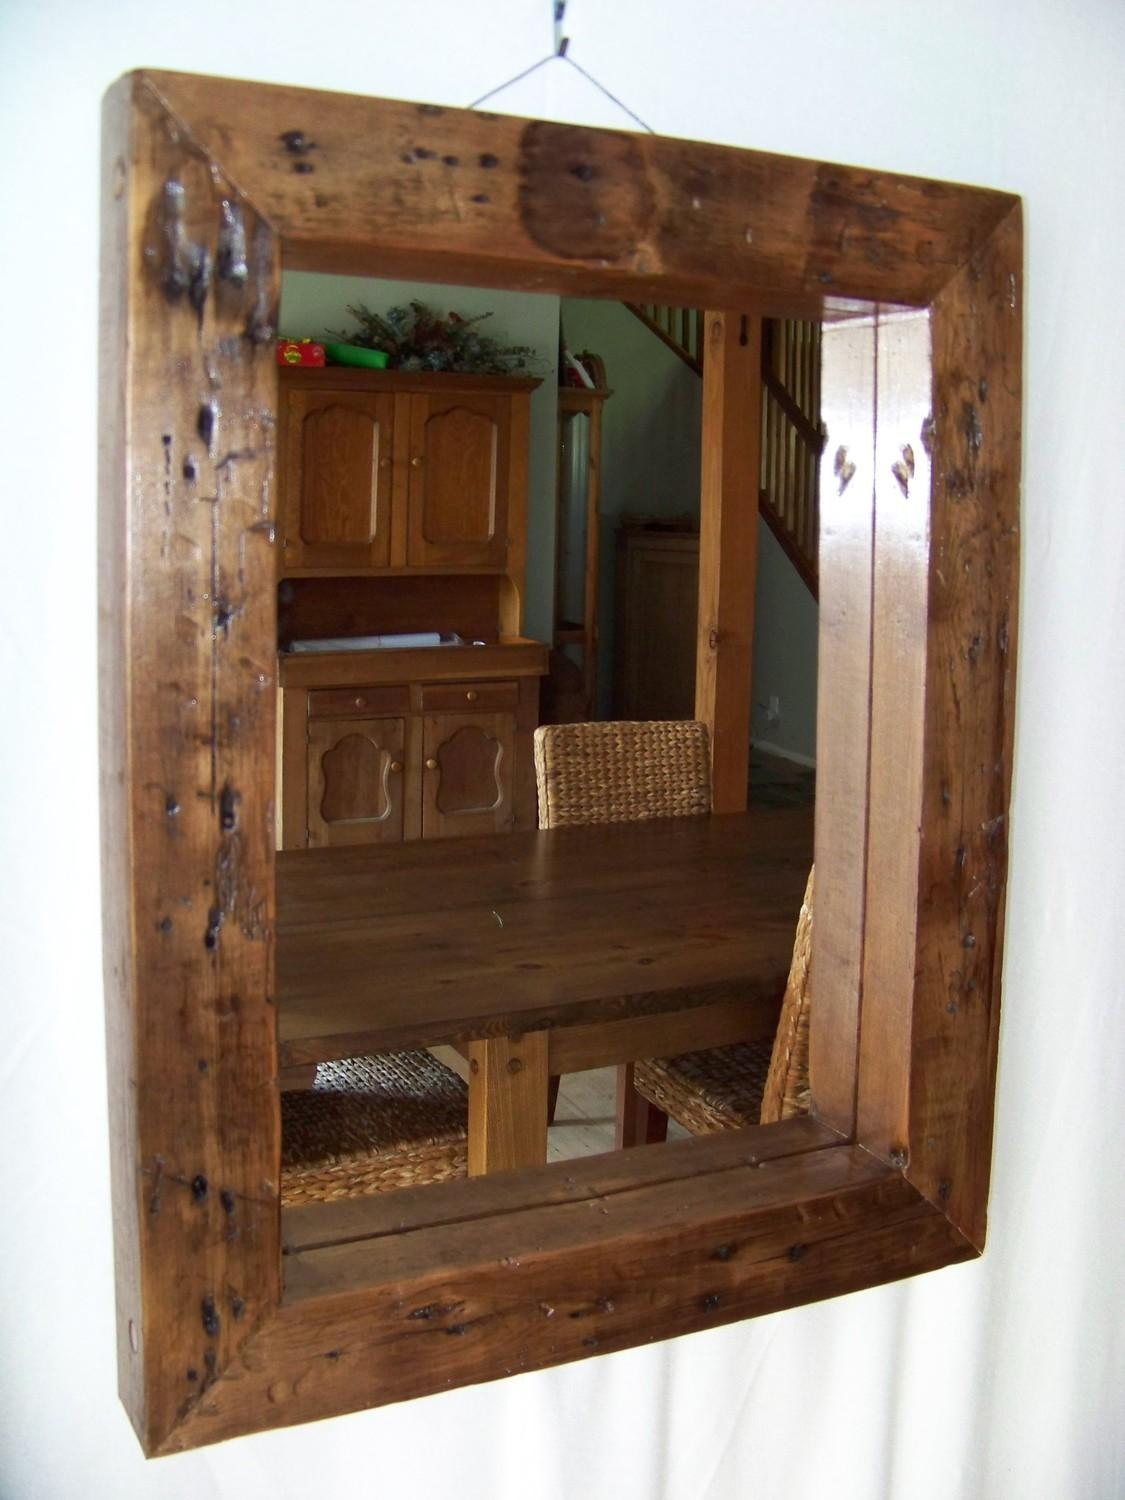 Reclaimed Wood Mirror Picture — Interior Exterior Homie : Making For Vintage Wood Mirrors (Image 14 of 20)